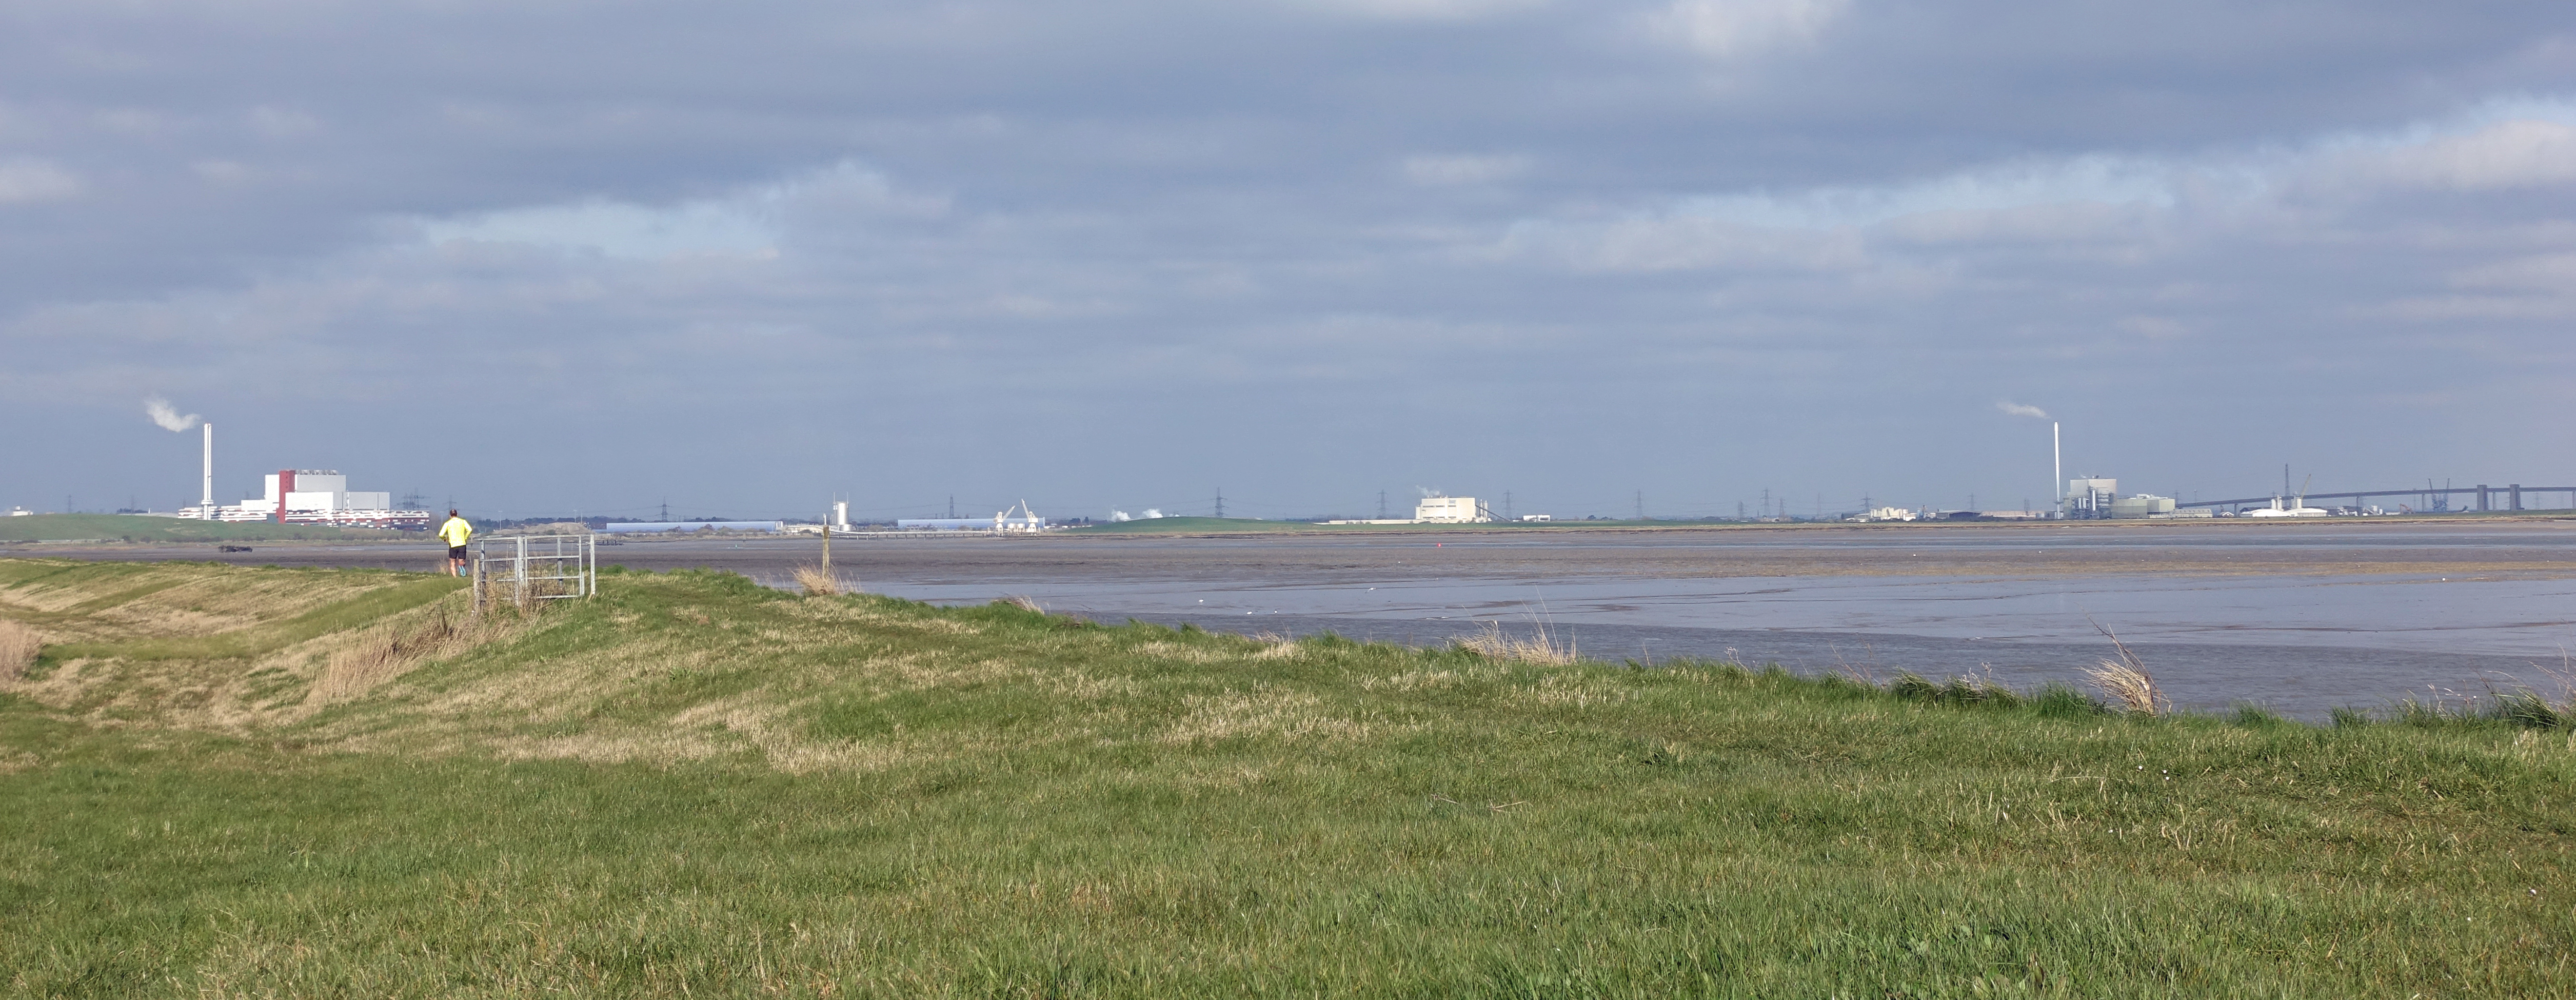 I completely failed to notice the trail runner until he was past me, so engrossed with watching a Common Seal leisurely following the rising tide, and a group of restless Curlews on the marshes inland